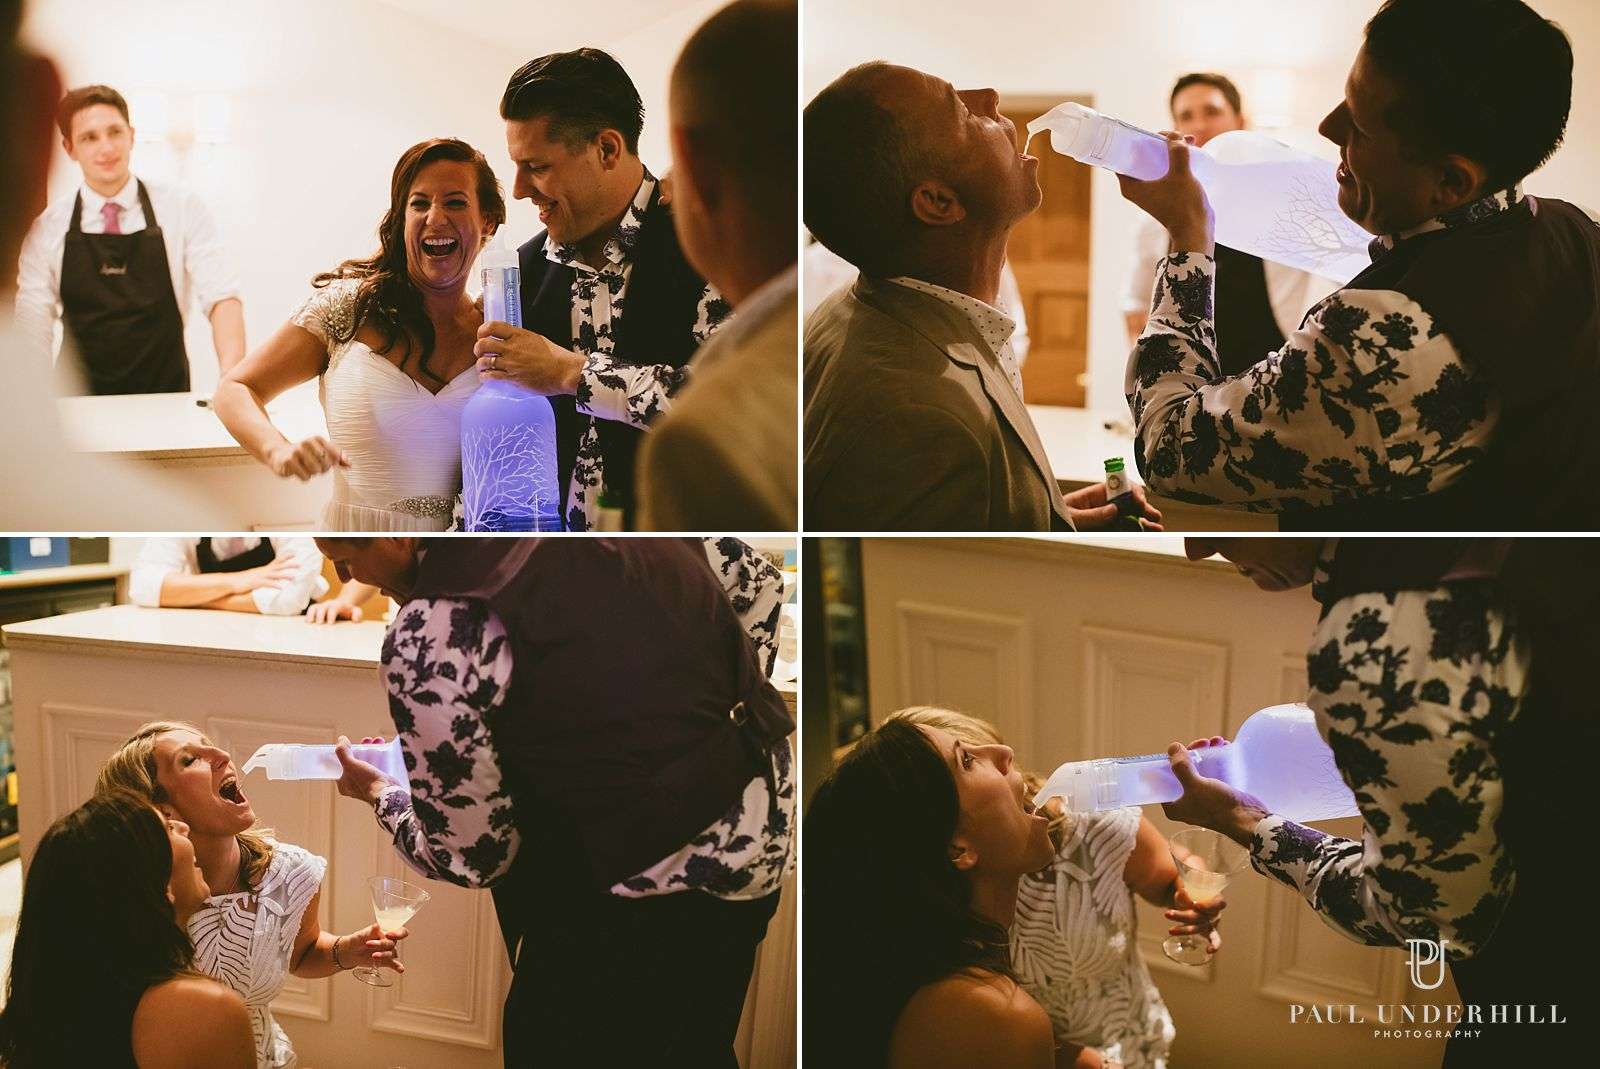 bride-and-groom-having-fun-at-wedding